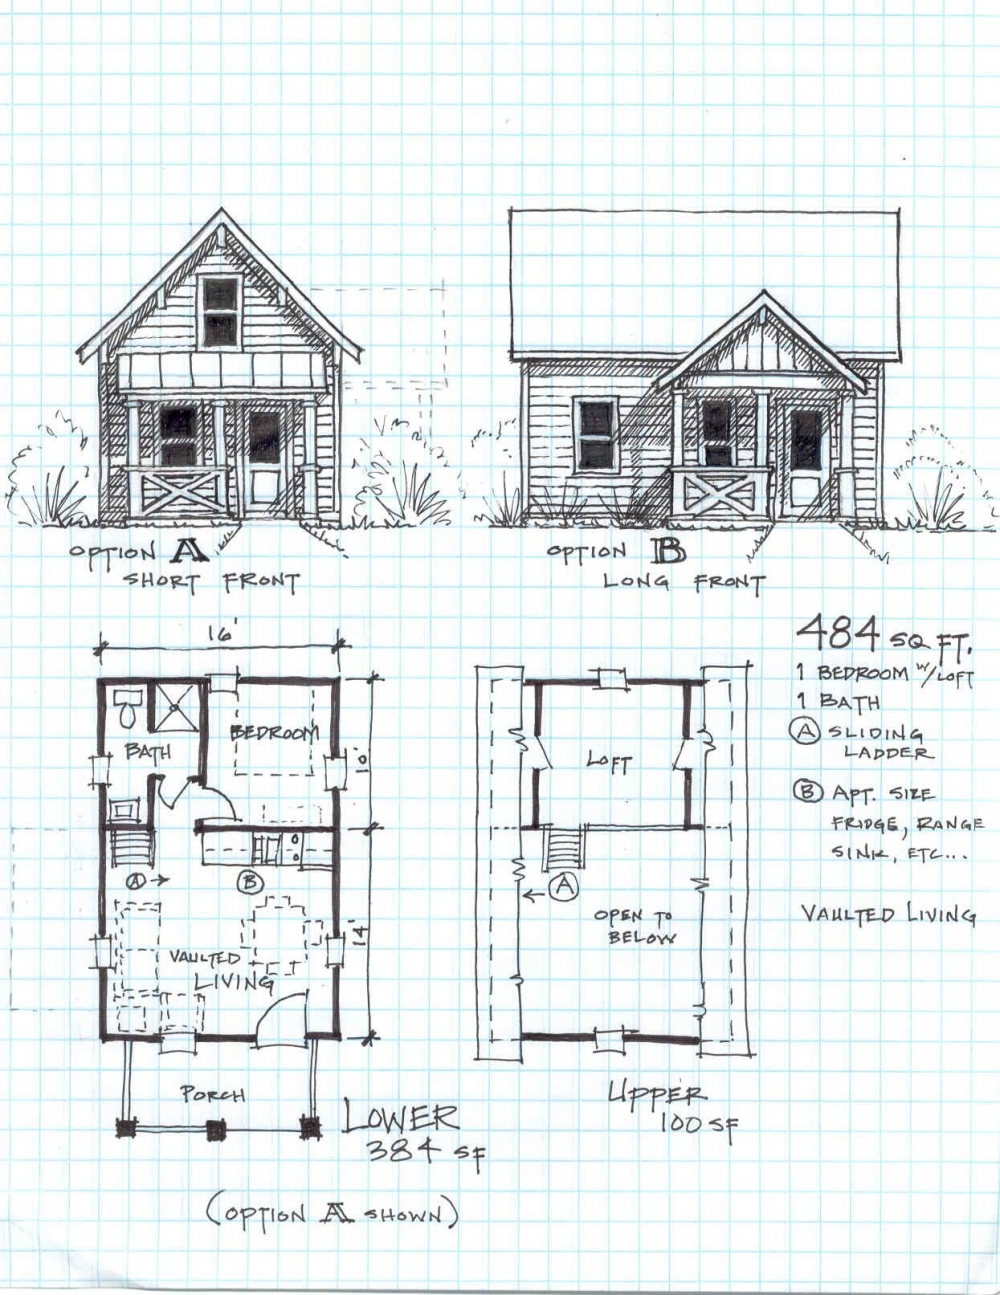 small cabin floor plans with loft on small cabin floor plans with loft post on 2020-12-20 14:56:39